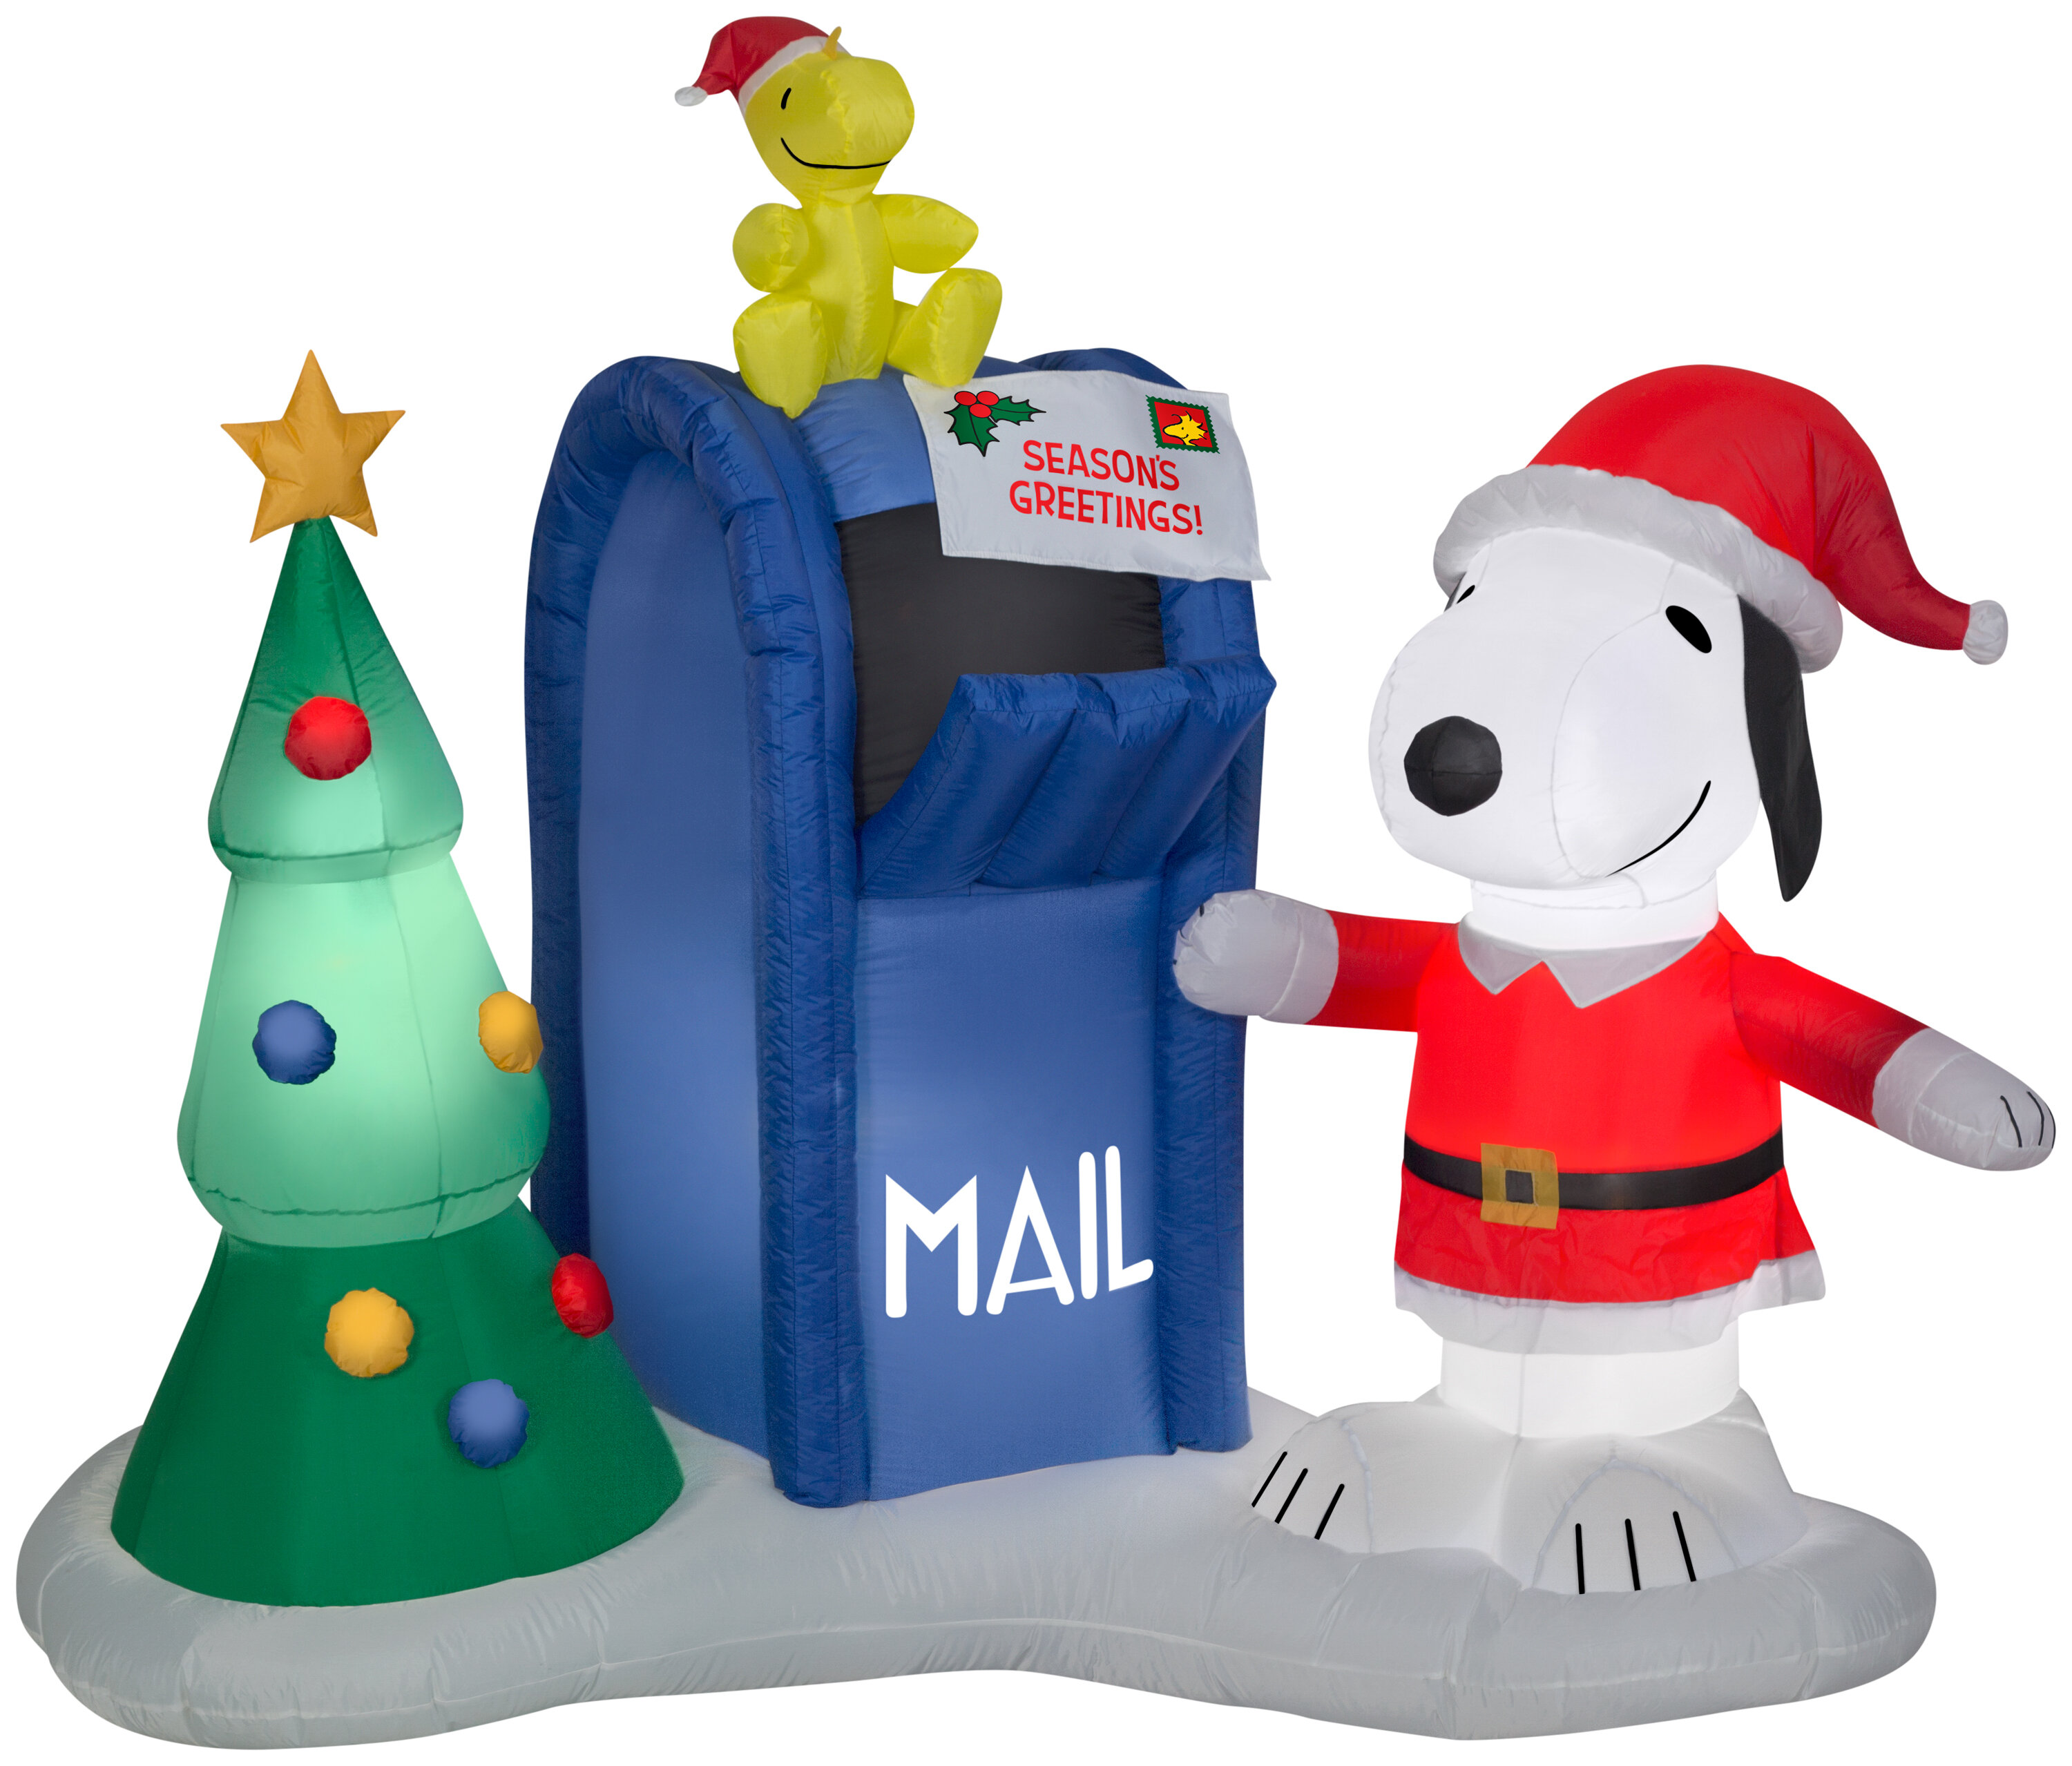 Snoopy and Woodstock with Mailbox LG Scene Peanuts Inflatable